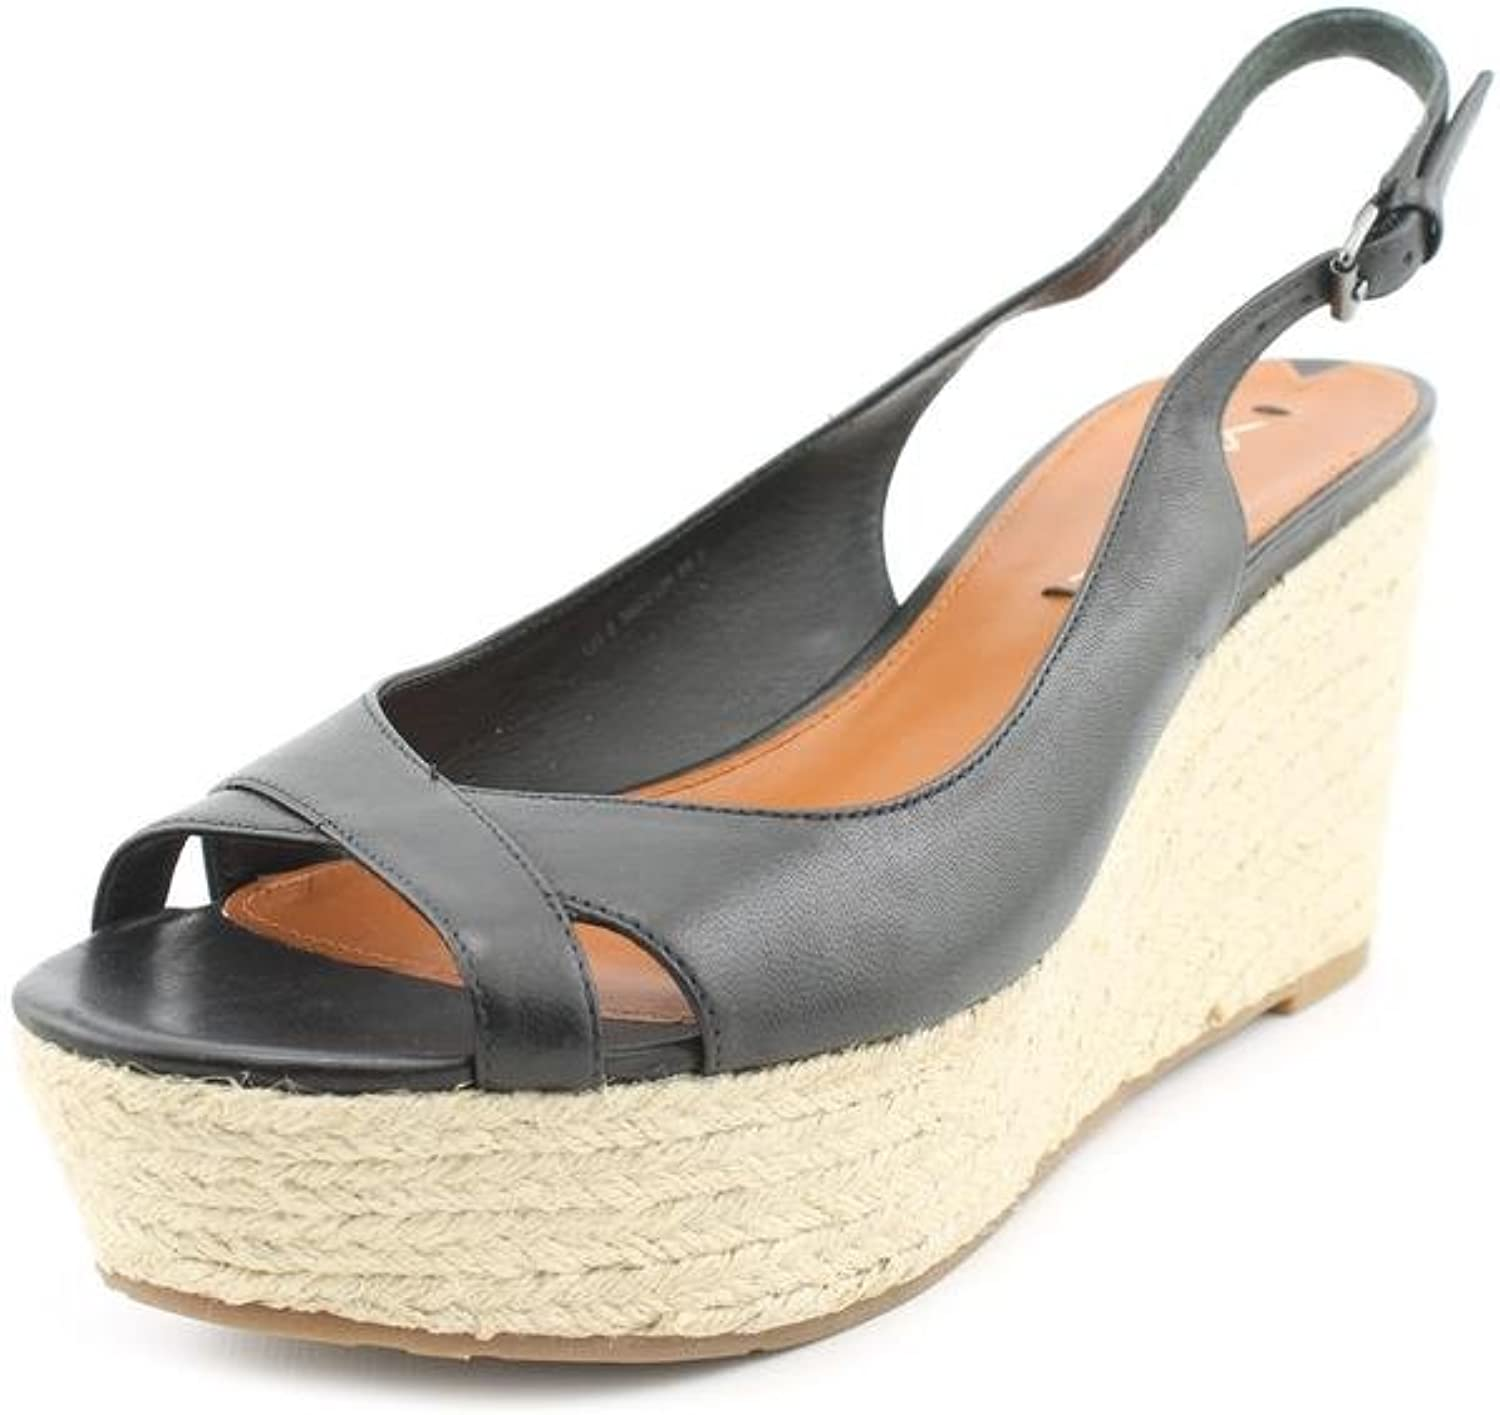 Via Spiga Luciana Womens US Size 8.5 Black Leather Wedge Sandals shoes